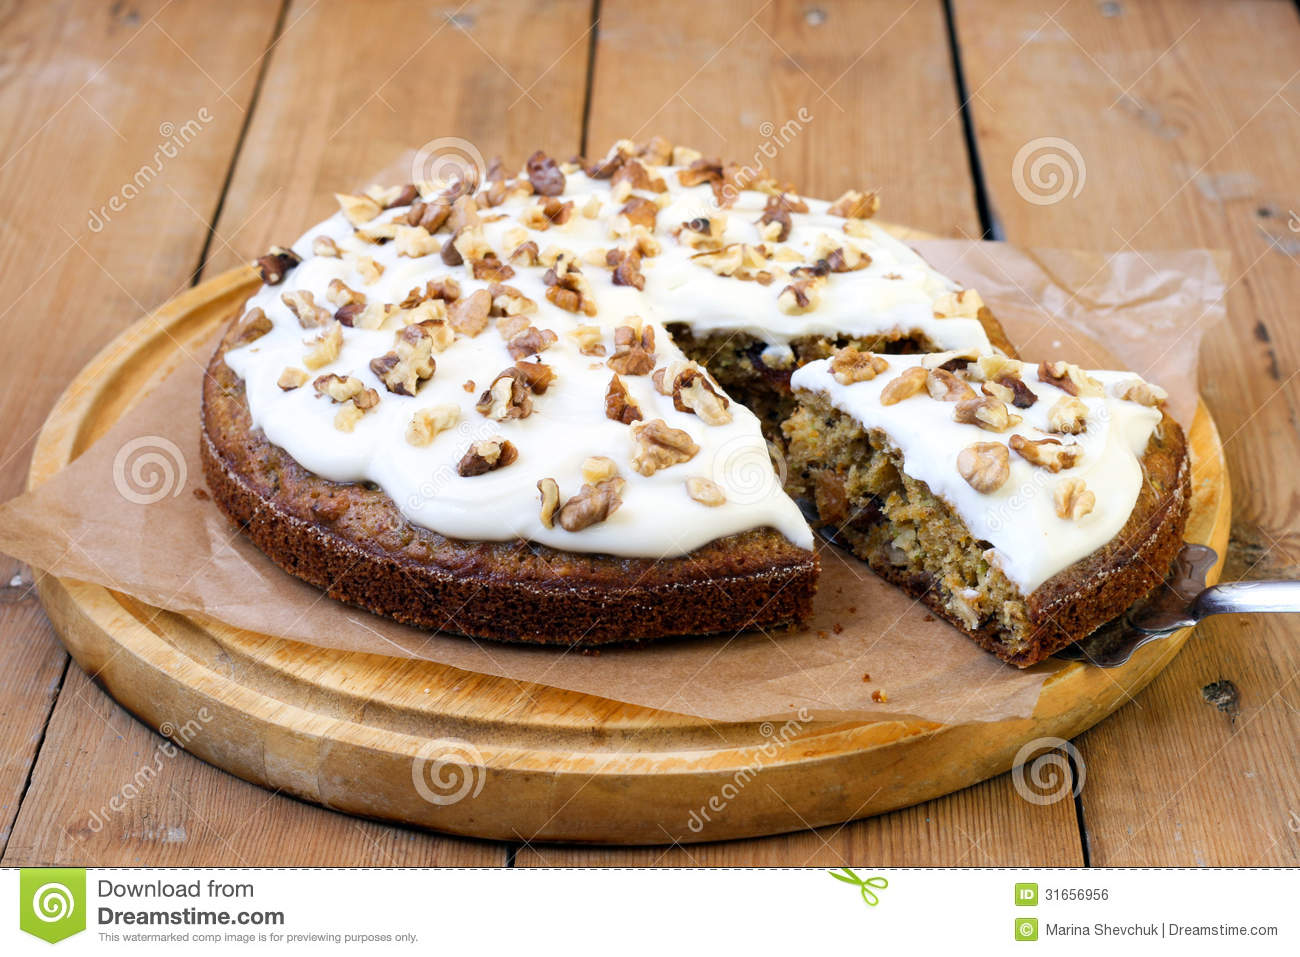 Courgette Cake With Cream Cheese Icing